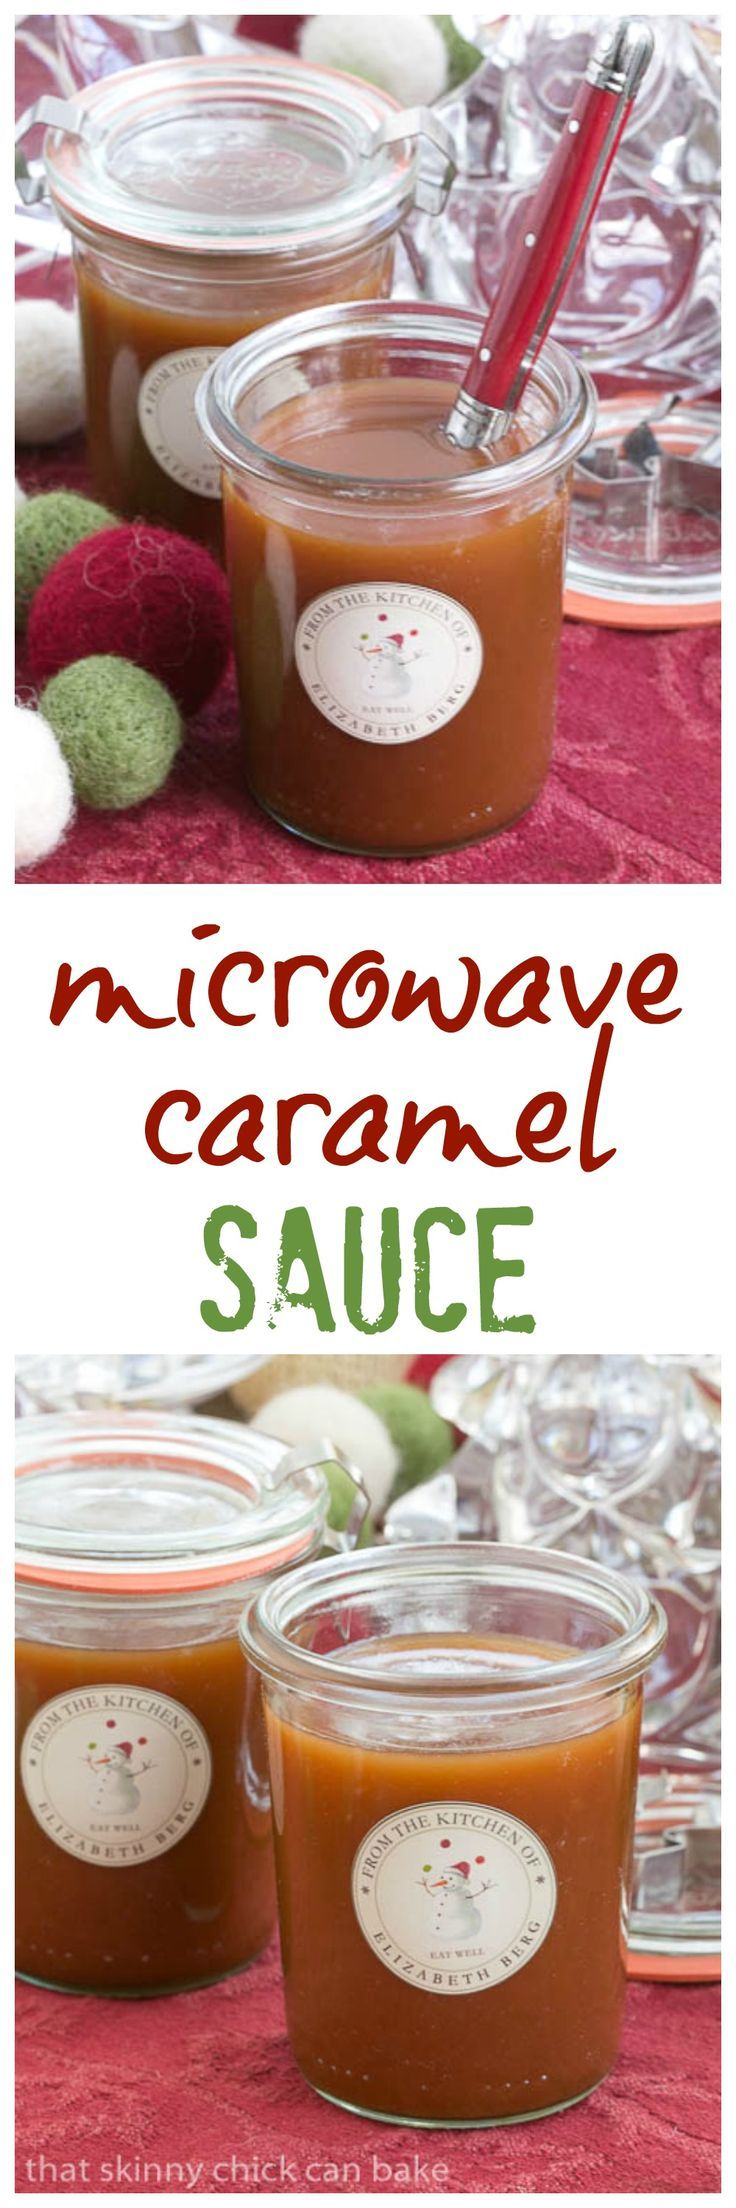 Microwave Caramel Sauce   A terrific hostess or holiday gift! @lizzydo